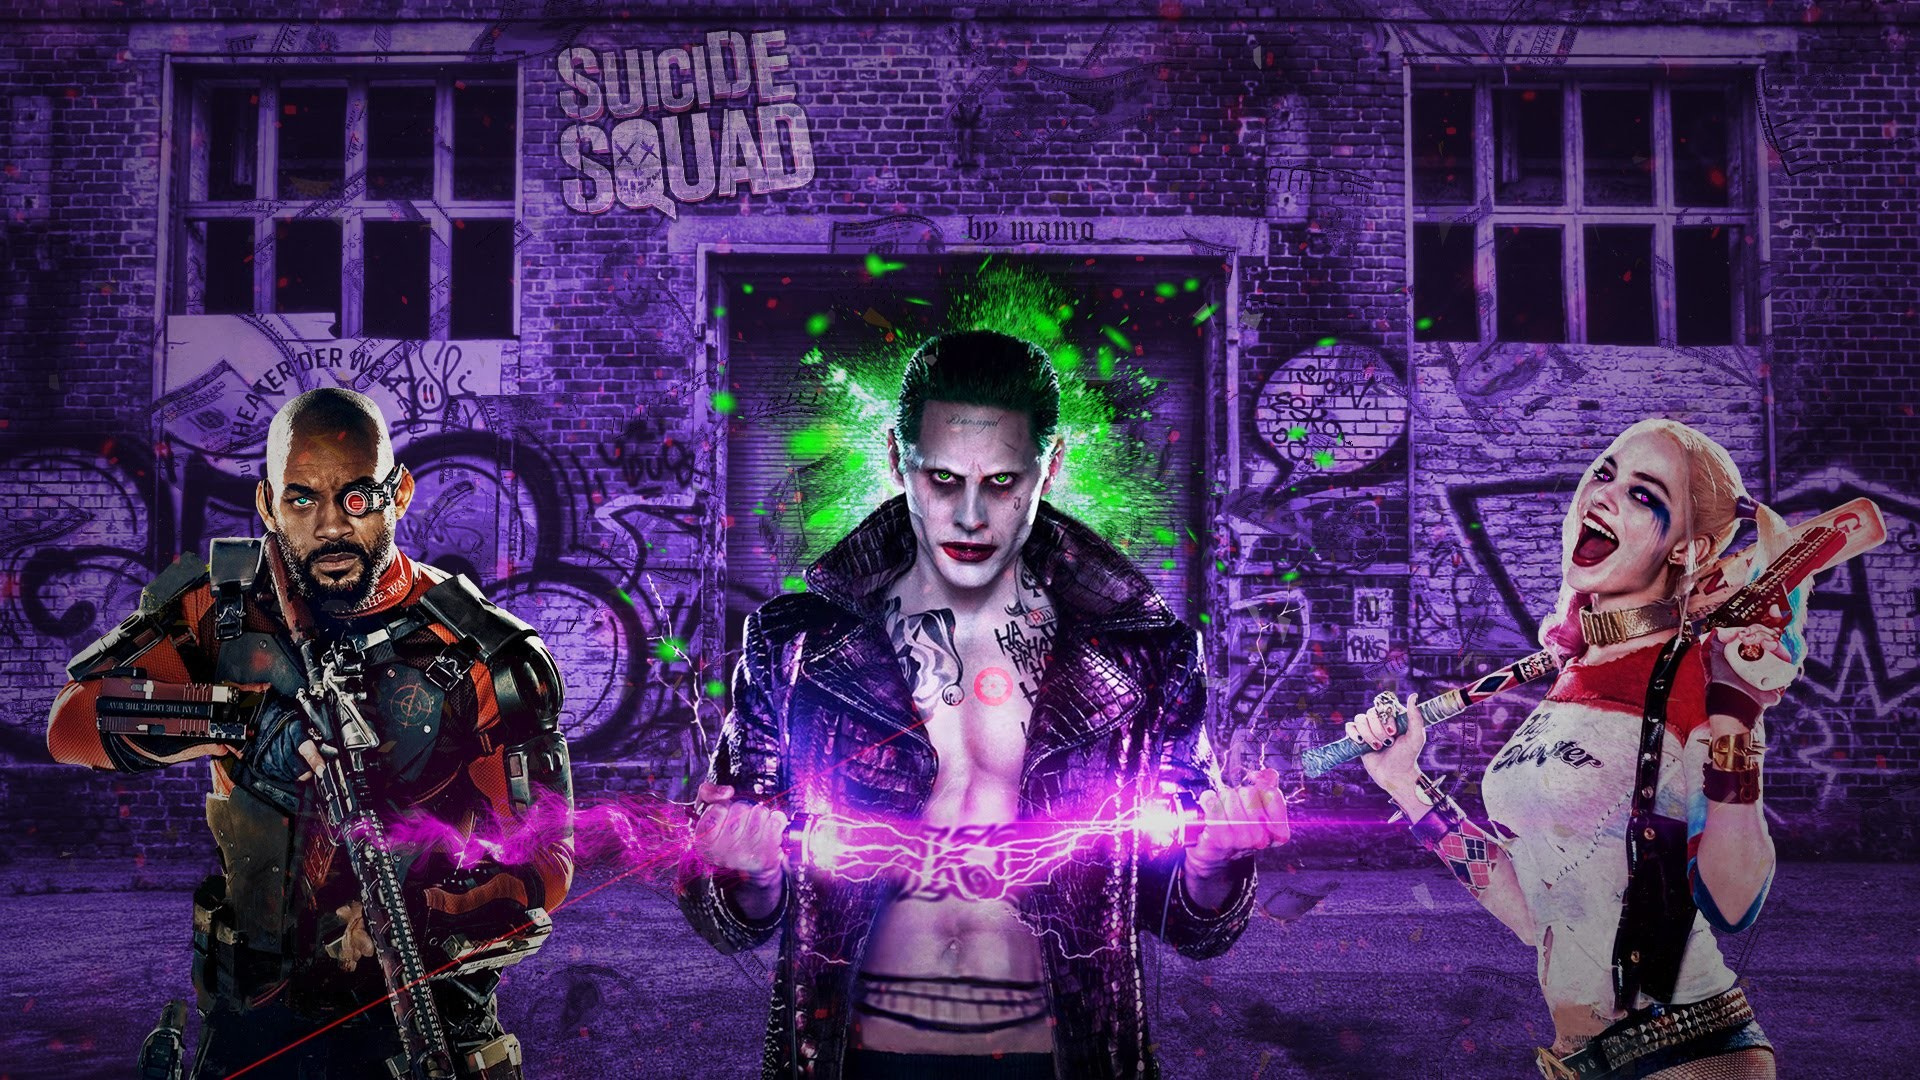 Hd Superhero Wallpapers For Pc Harley Quinn Suicide Squad Wallpapers 72 Images